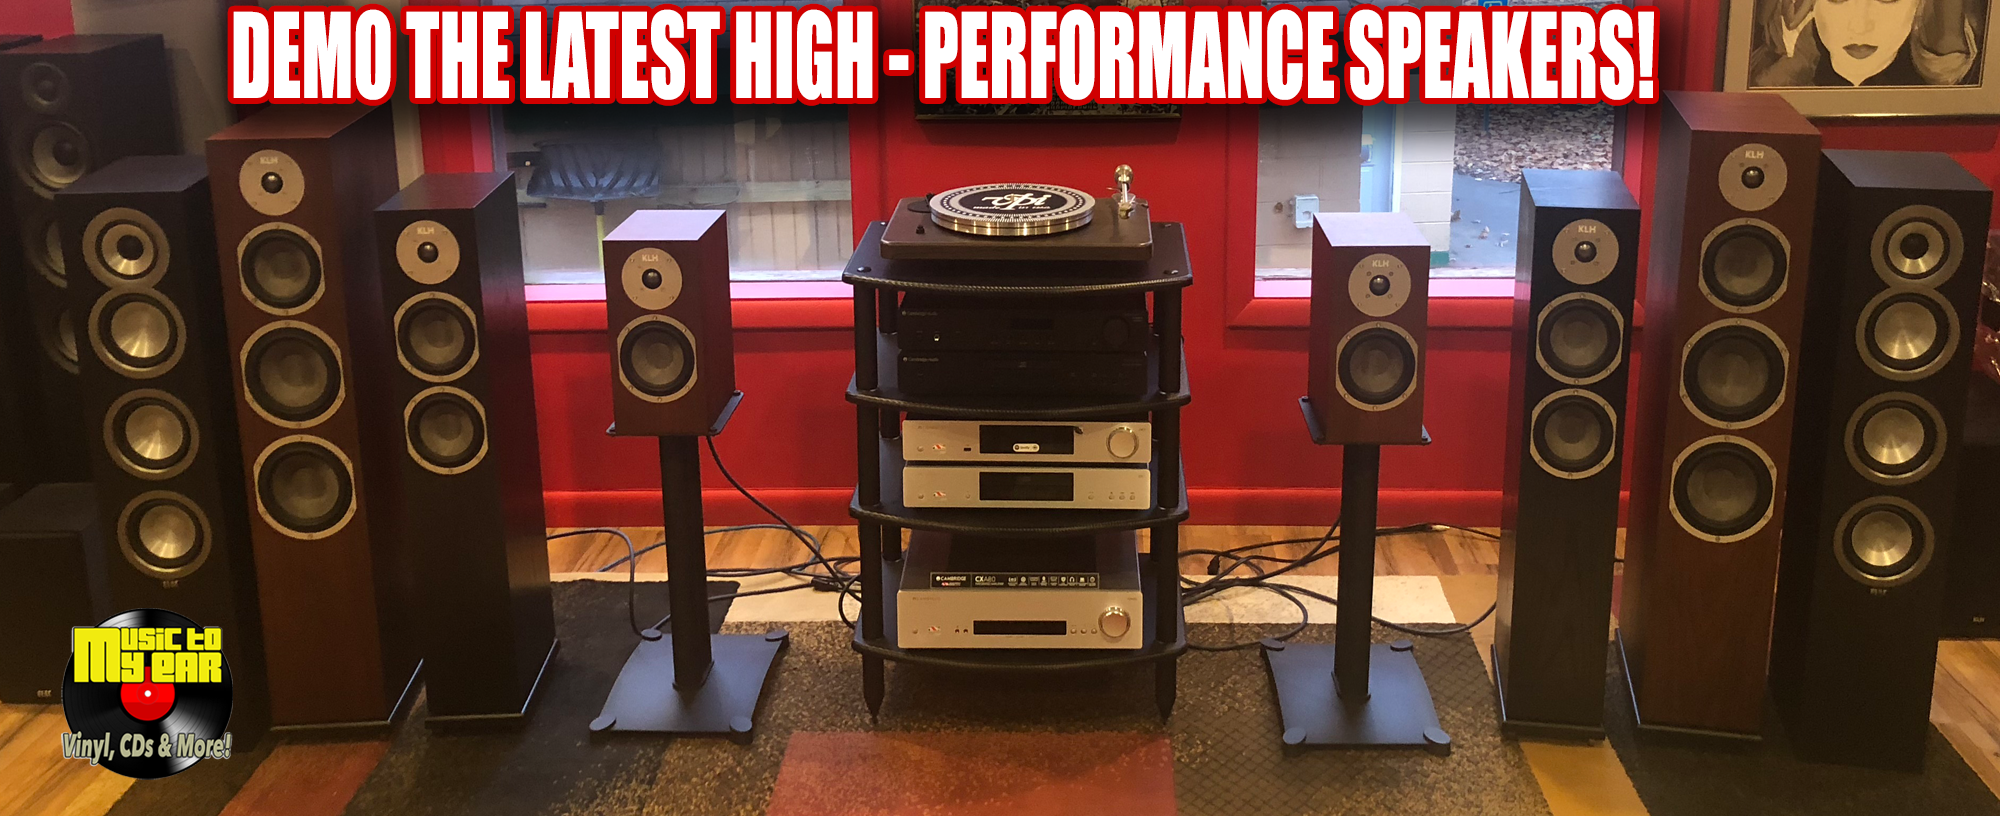 Demo Our High Performance Speakers